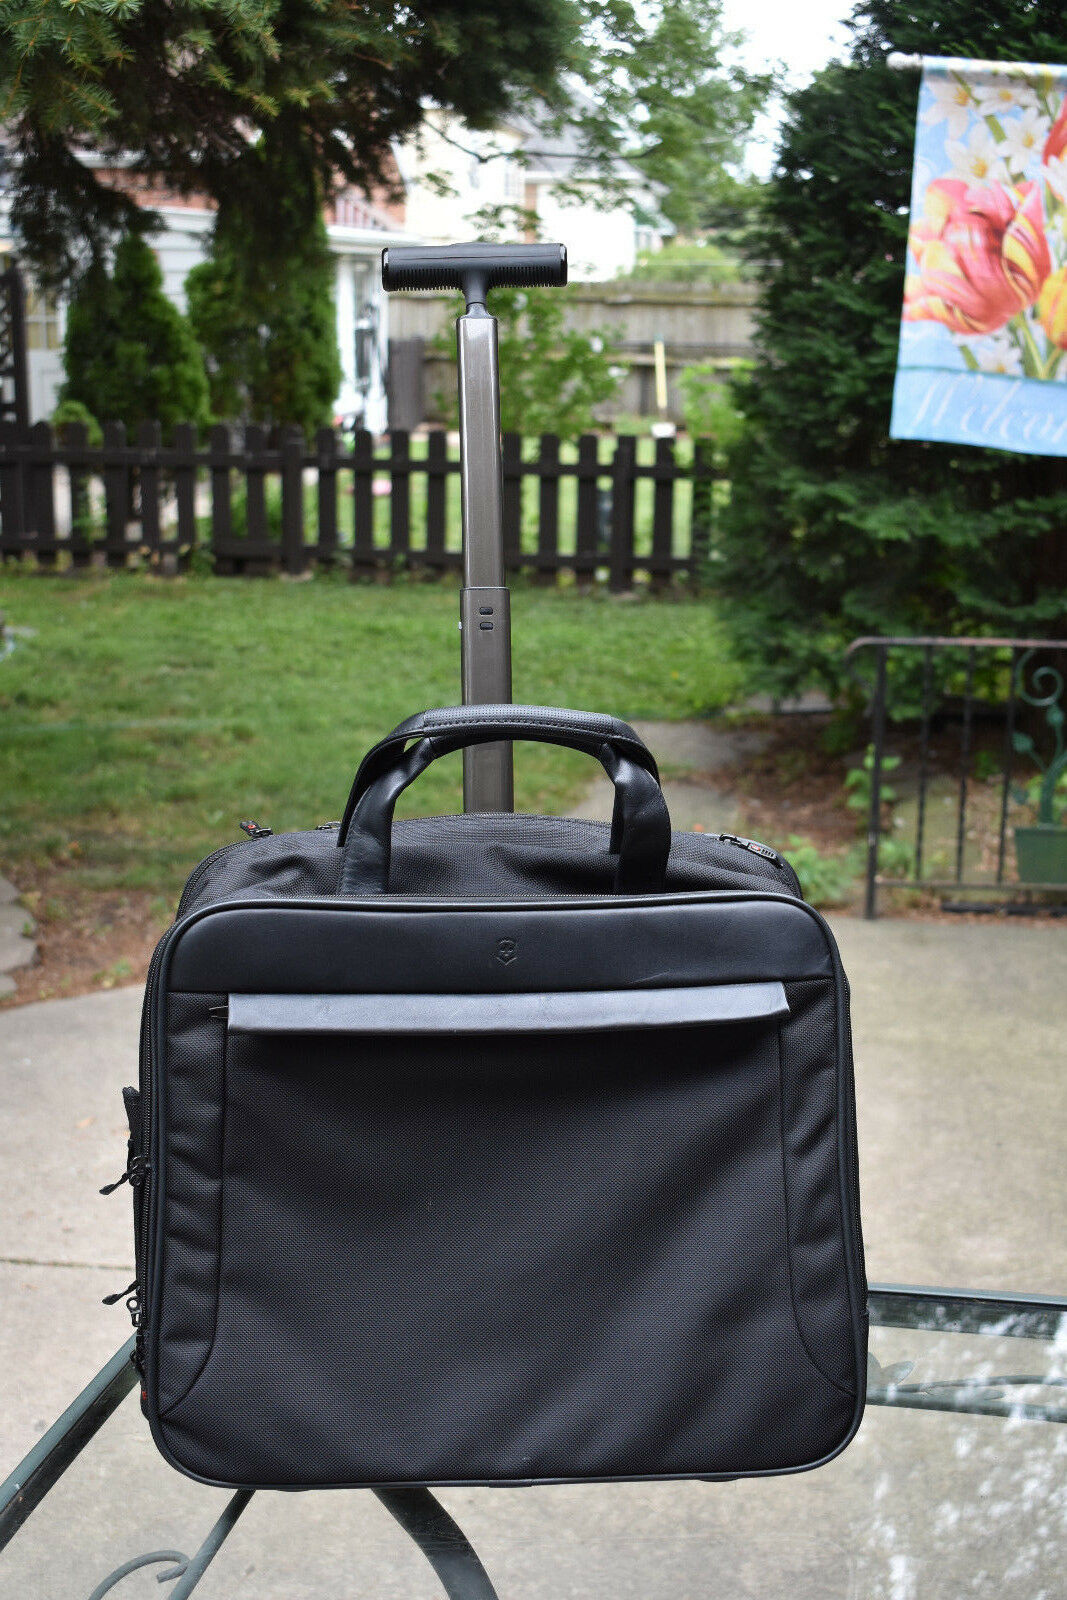 Swiss Victorinox Army Laptop Messenger Wheeled Carry On Briefcase Tote Bag - $39.99